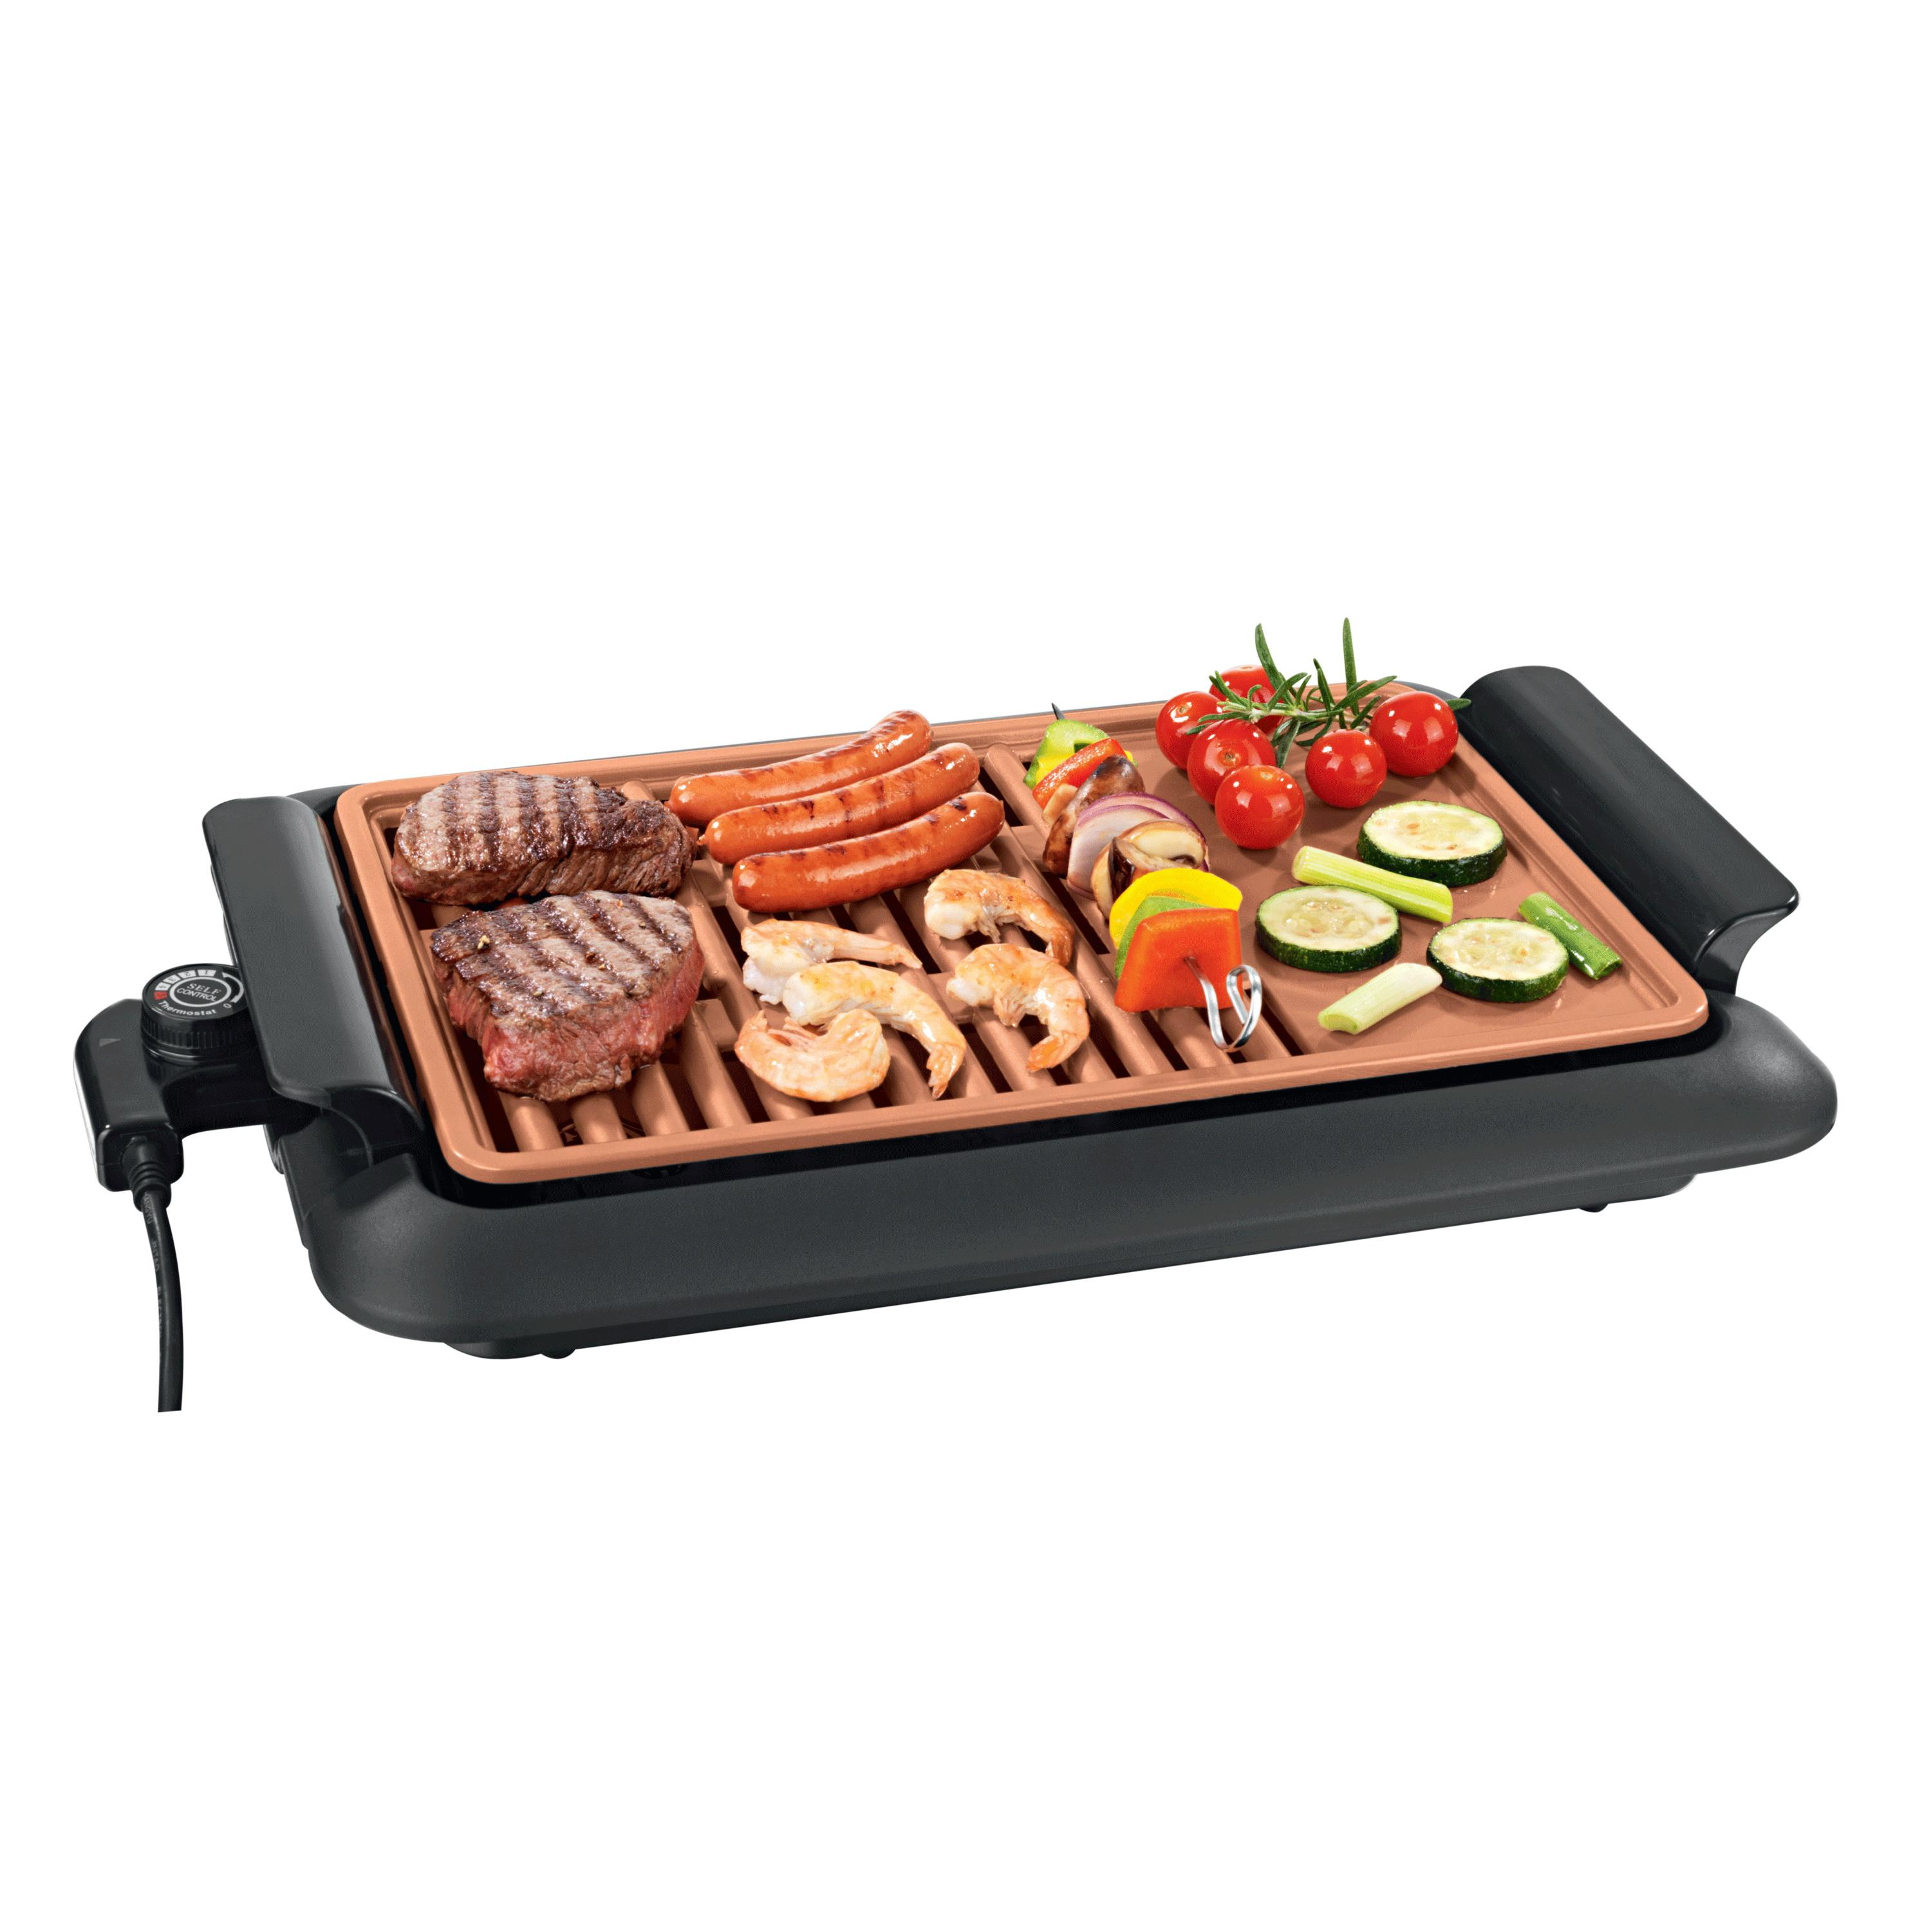 Newest design top quality JA802D5 machine infrared bbq grill heater electric